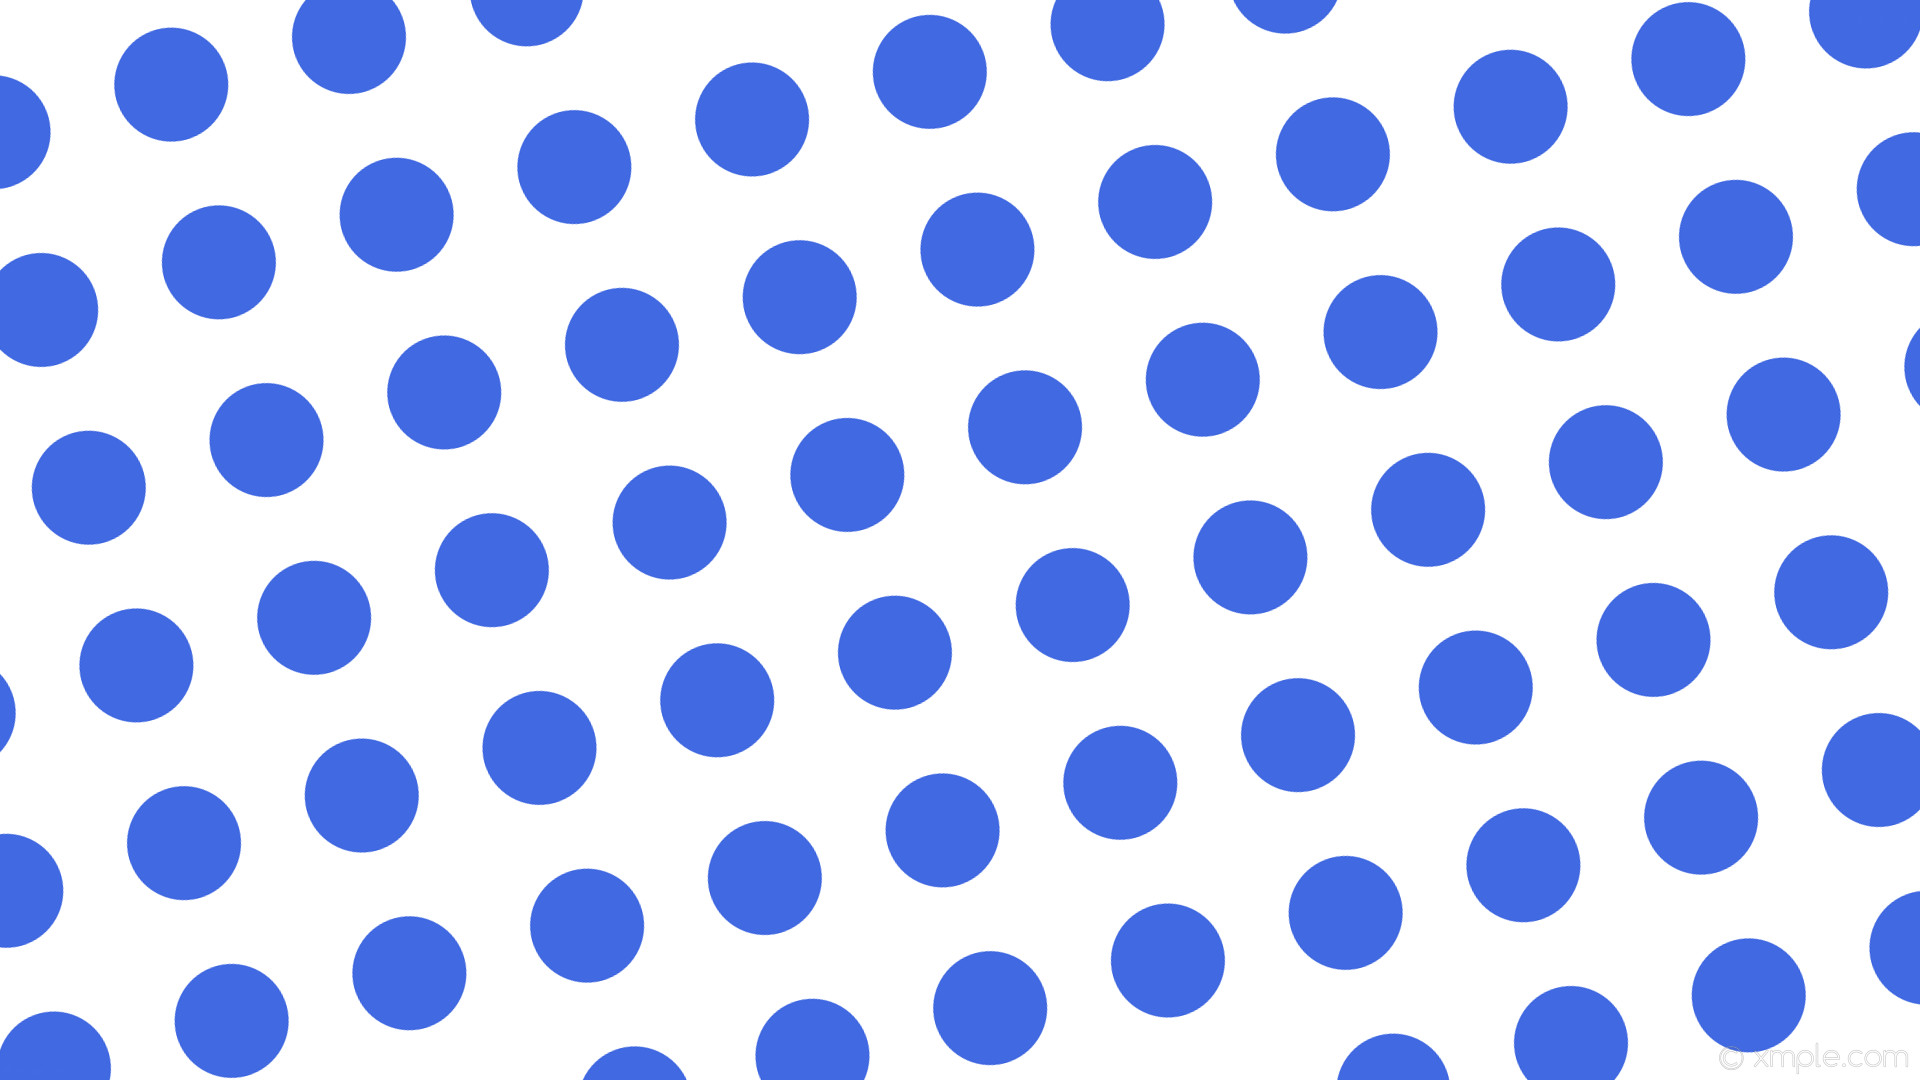 wallpaper white polka dots blue spots royal blue #ffffff #4169e1 285° 114px  184px